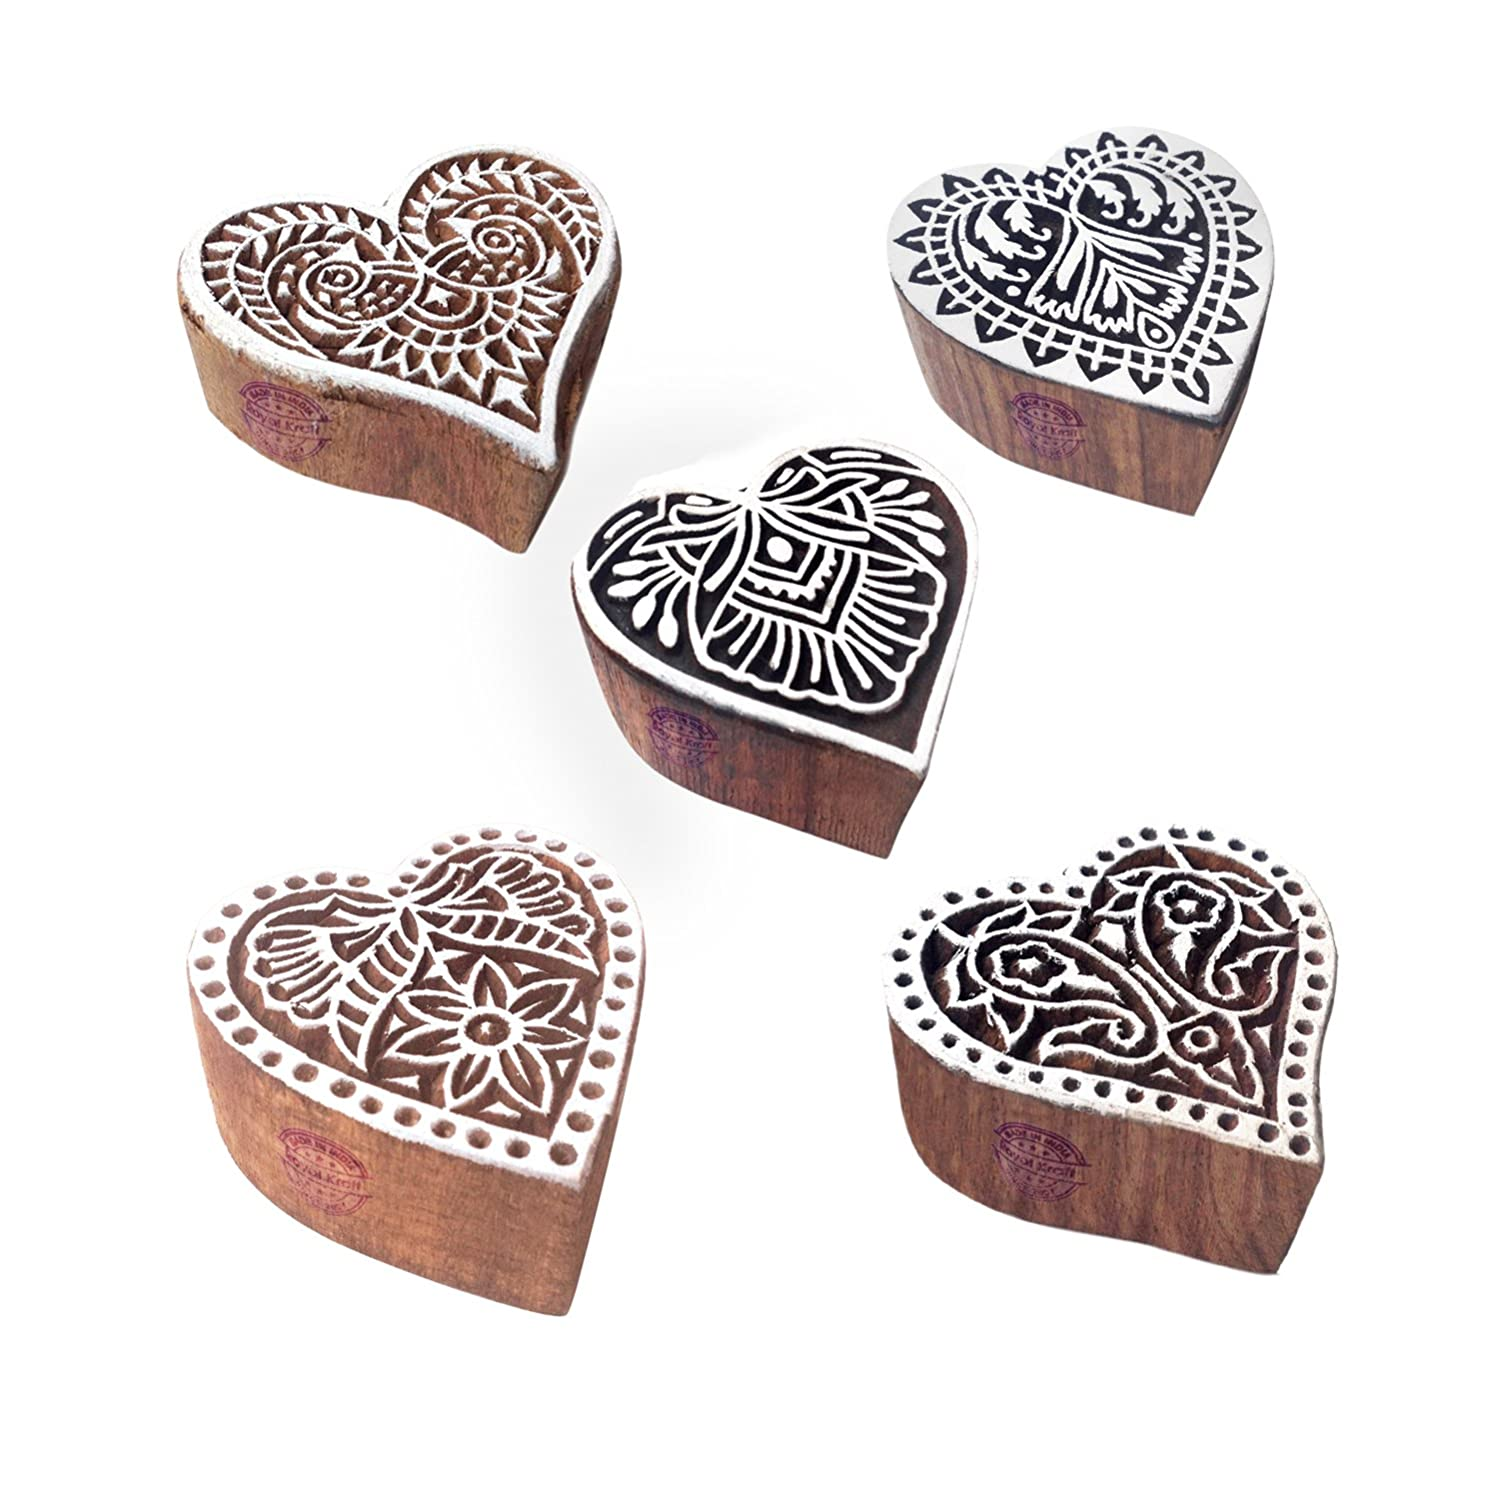 Royal Kraft Crafty Pattern Heart and Floral Wood Block Stamps (Set of 5) Htag1164